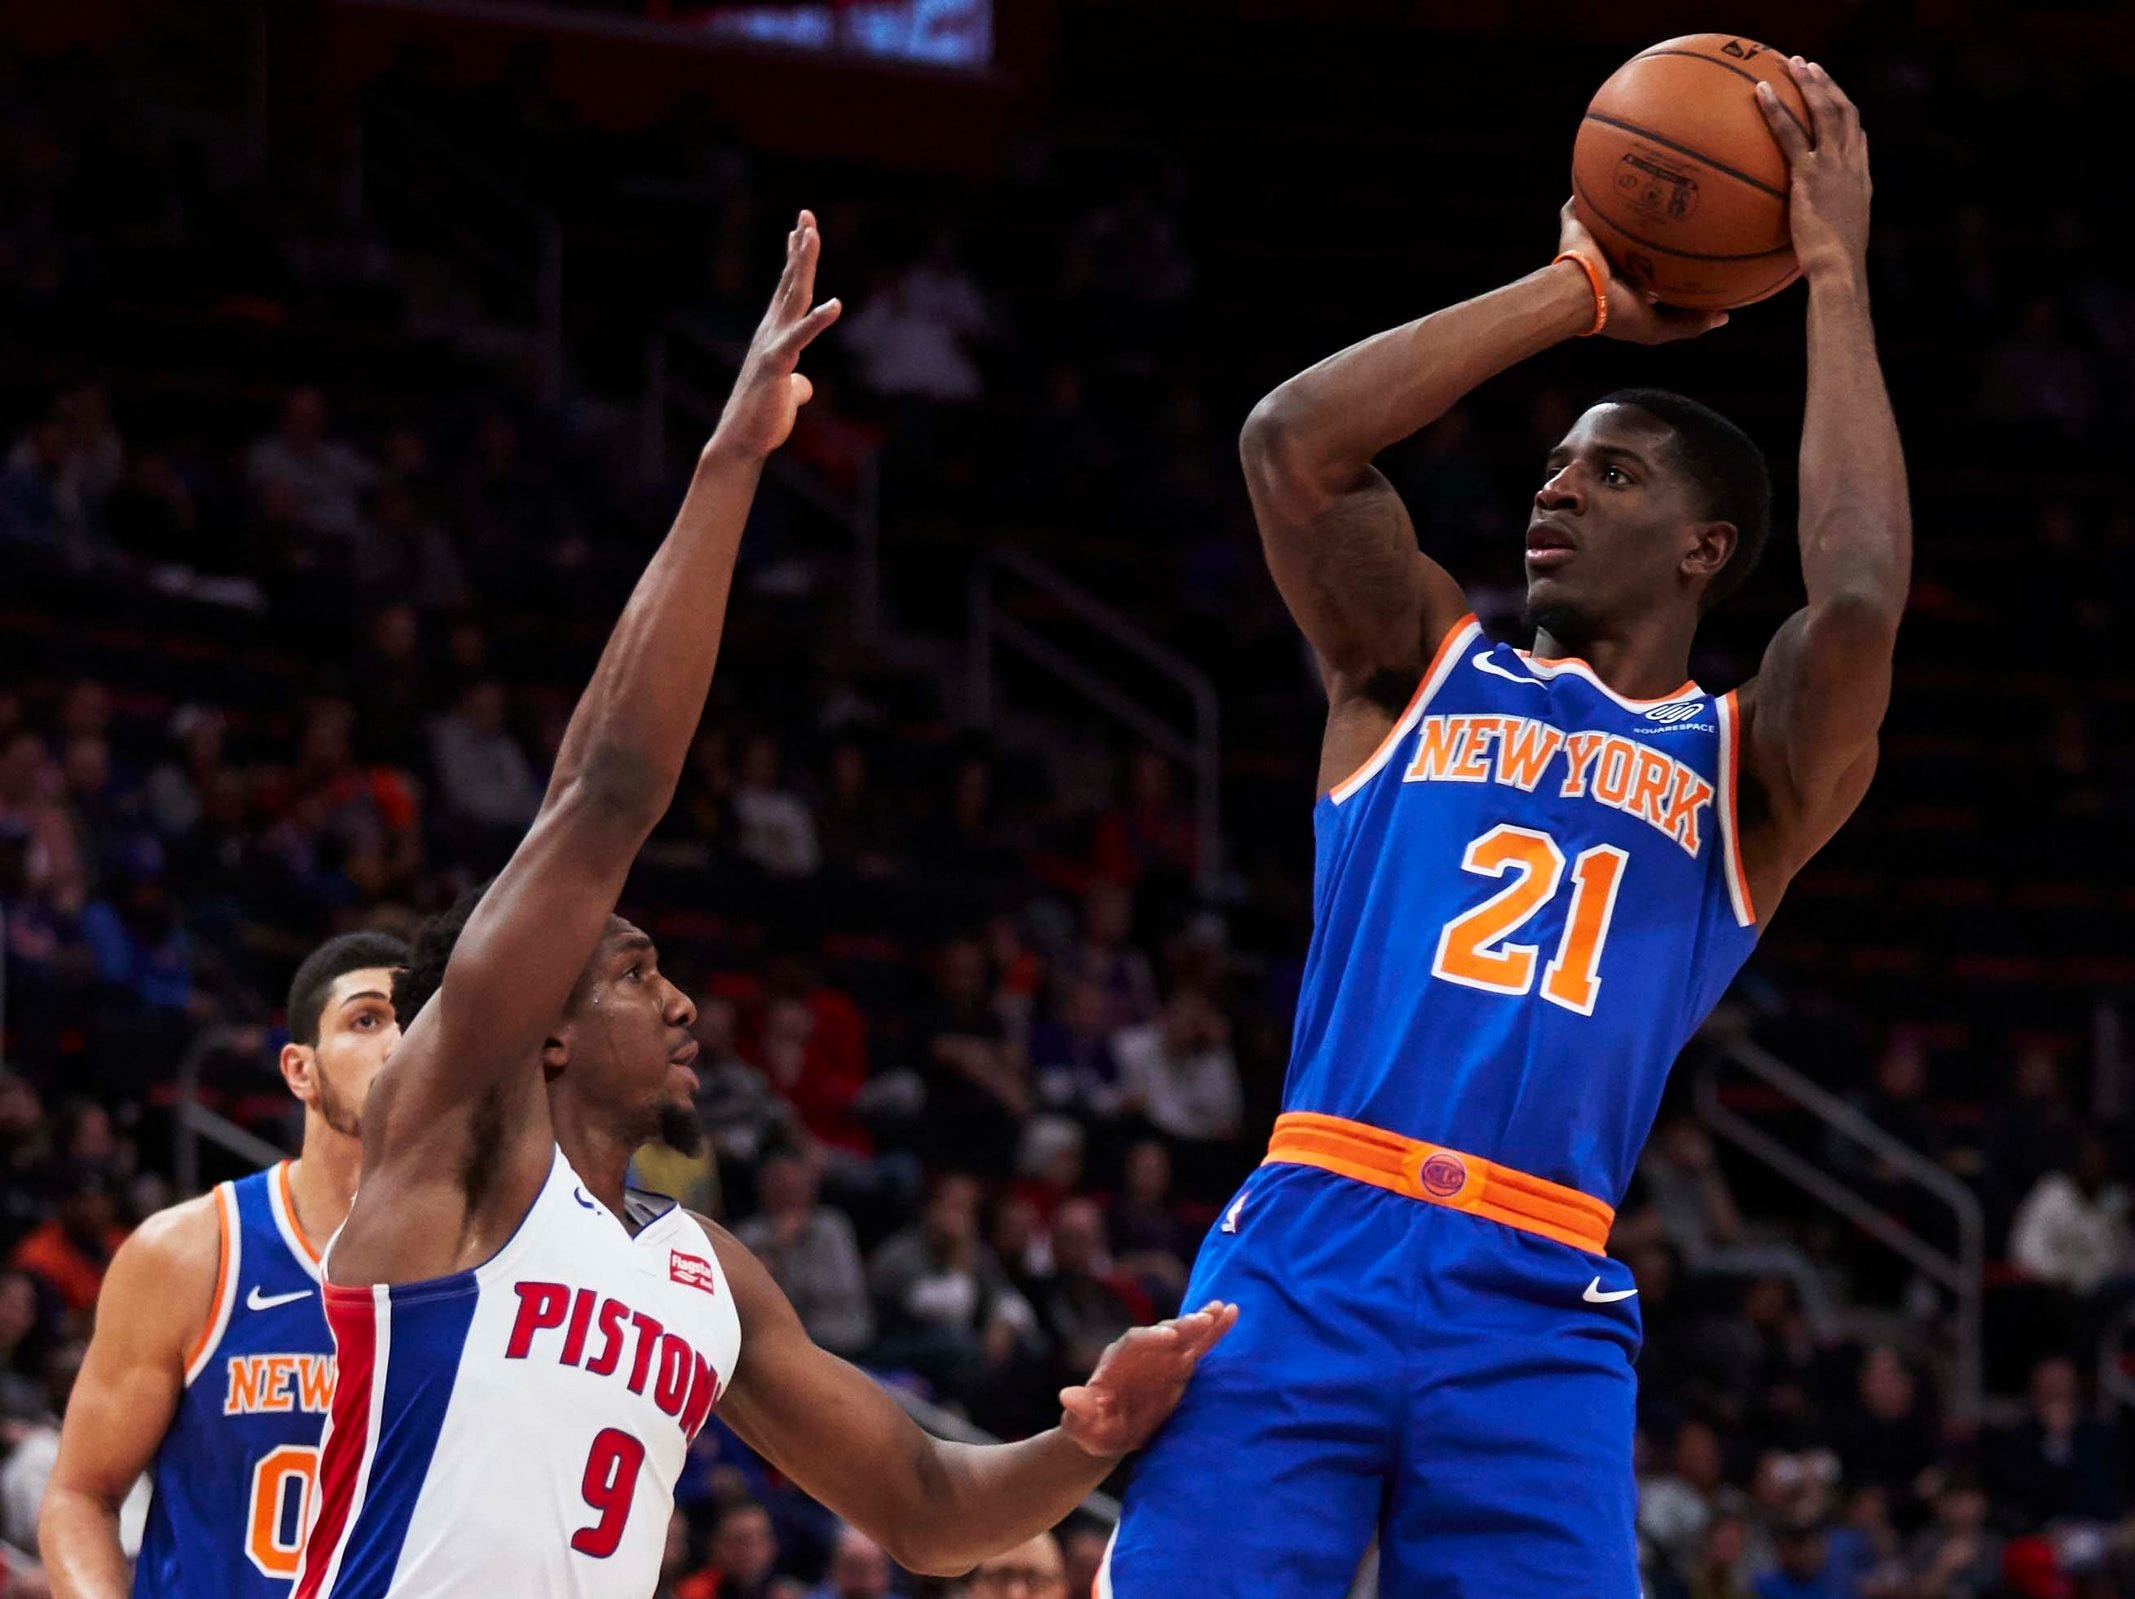 New York Knicks guard Damyean Dotson (21) shoots over Detroit Pistons guard Langston Galloway (9) in the second half at Little Caesars Arena.